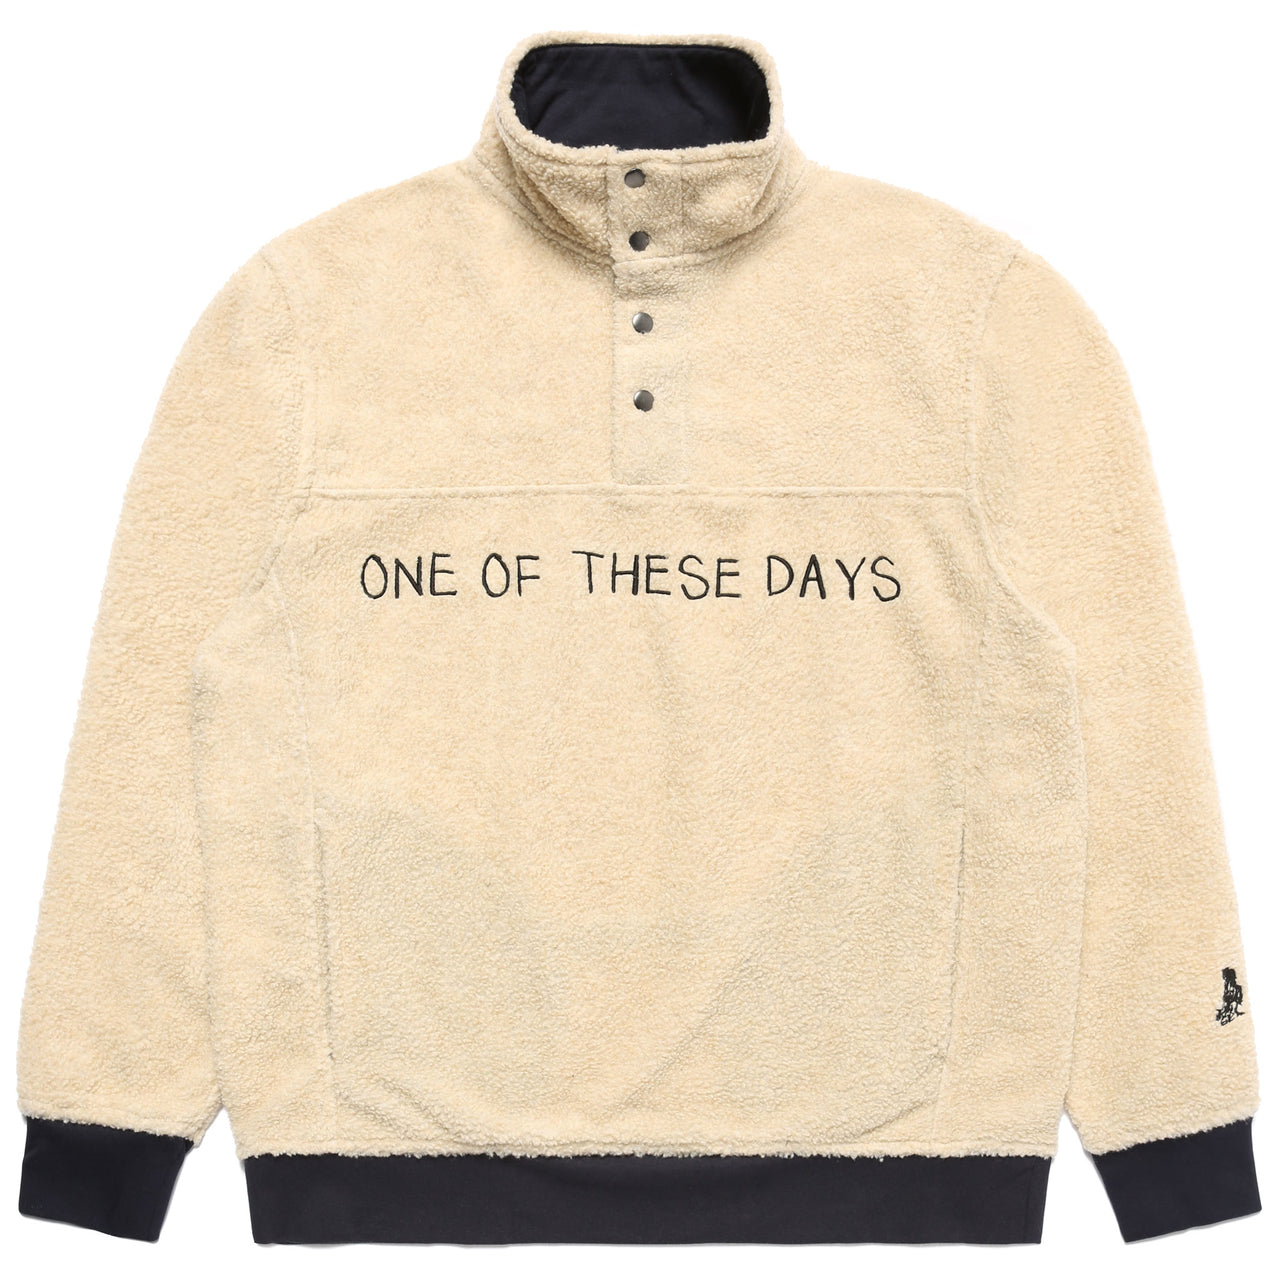 One Of These Days Sherpa Jacket - Ivory